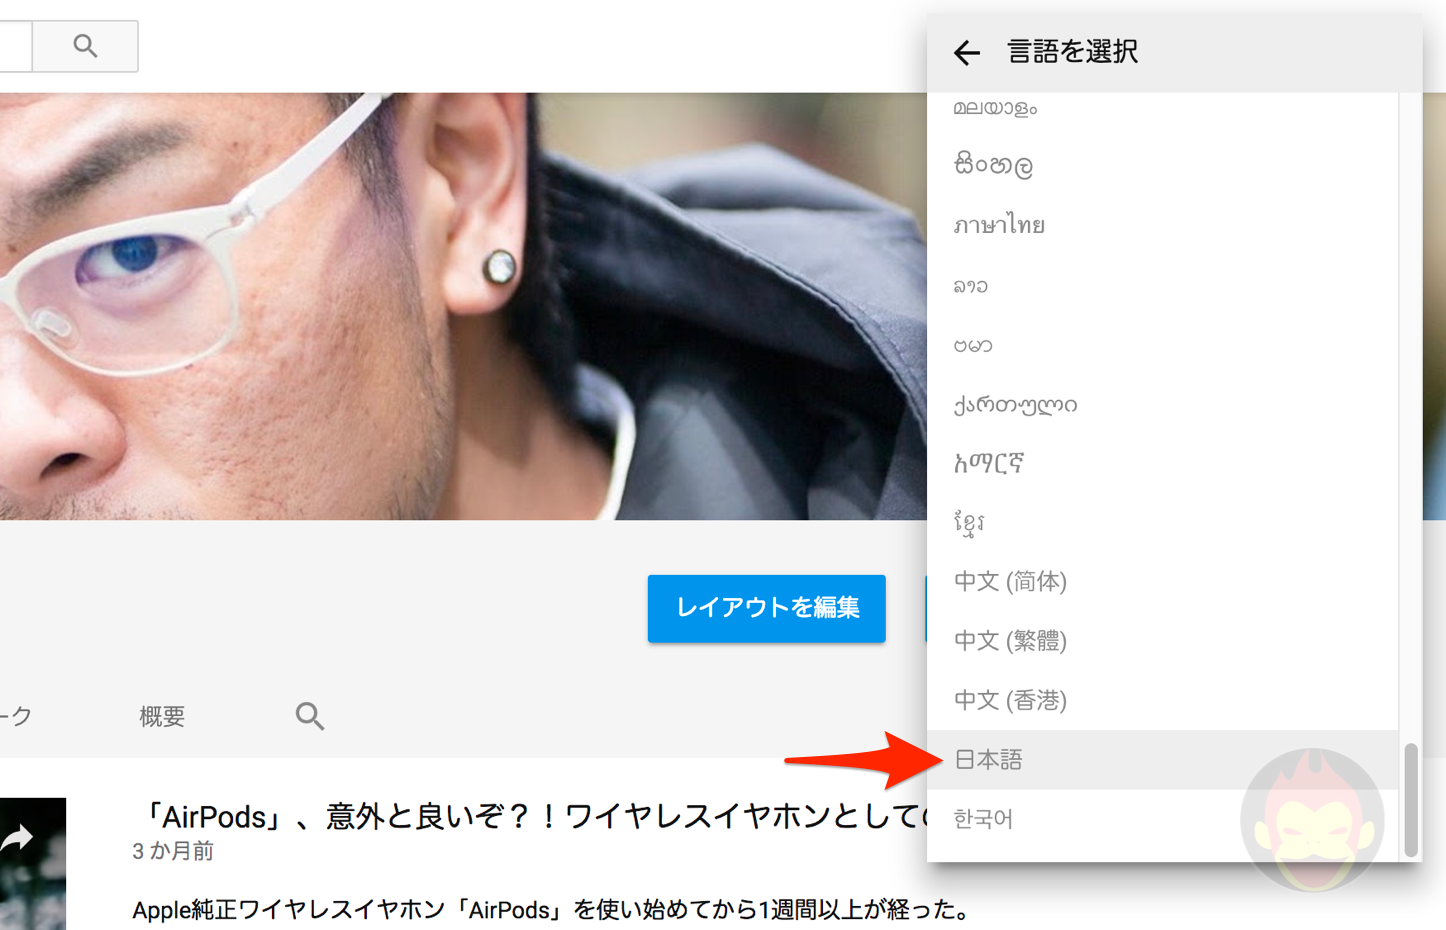 YouTube-Jap-to-Eng-05.png